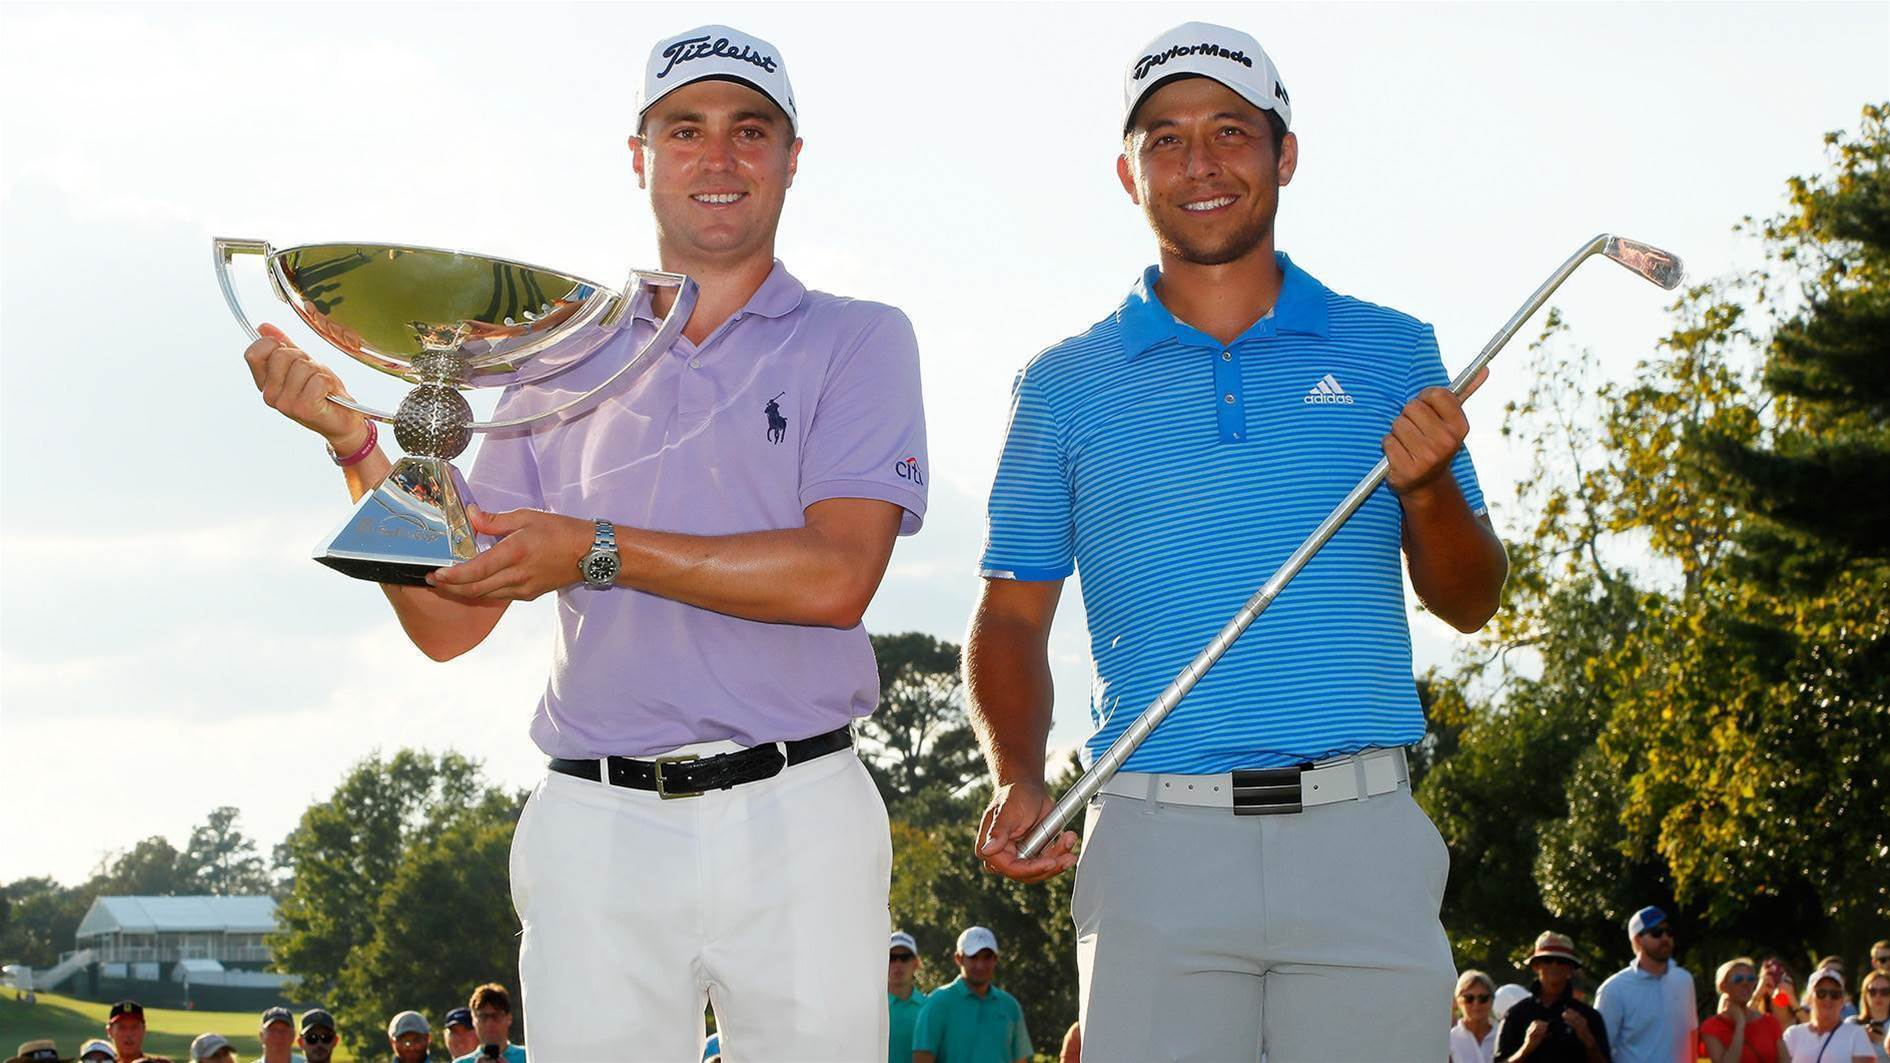 PGA TOUR: Thomas cashes in as rookie Schauffele rides his fortune